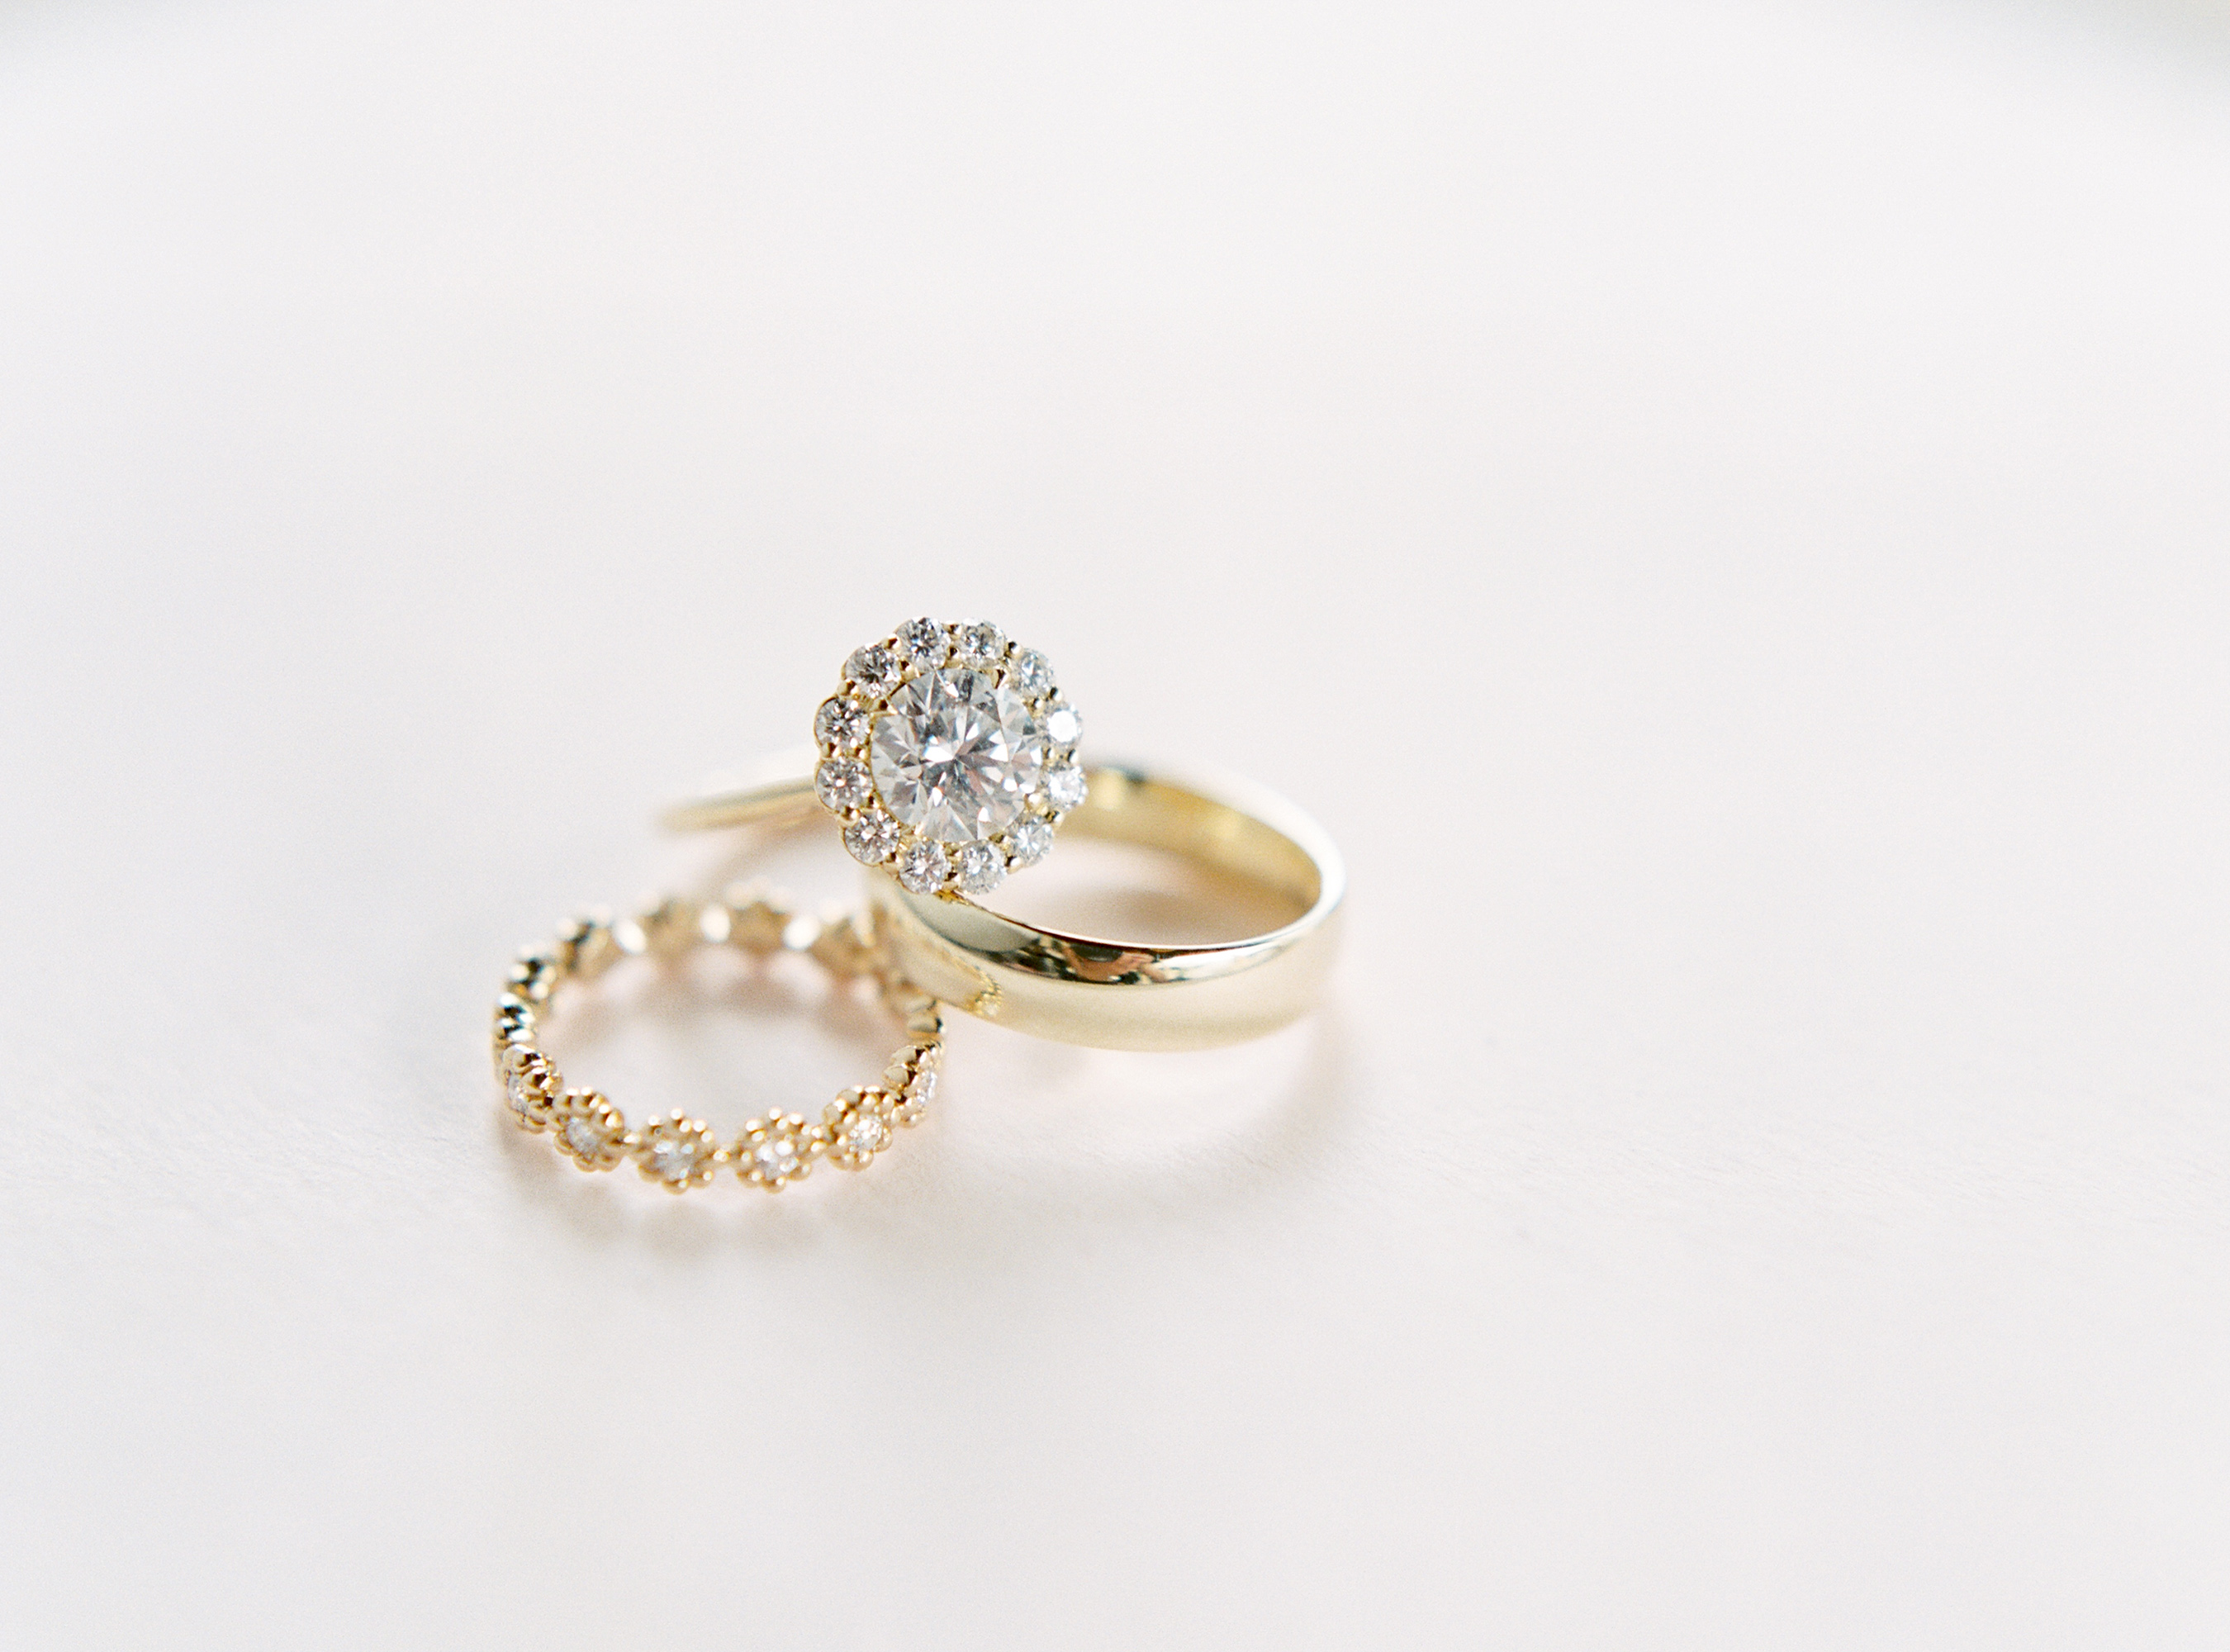 How Often Should You Take Your Engagement Ring to the Jeweler for a Tune-Up?